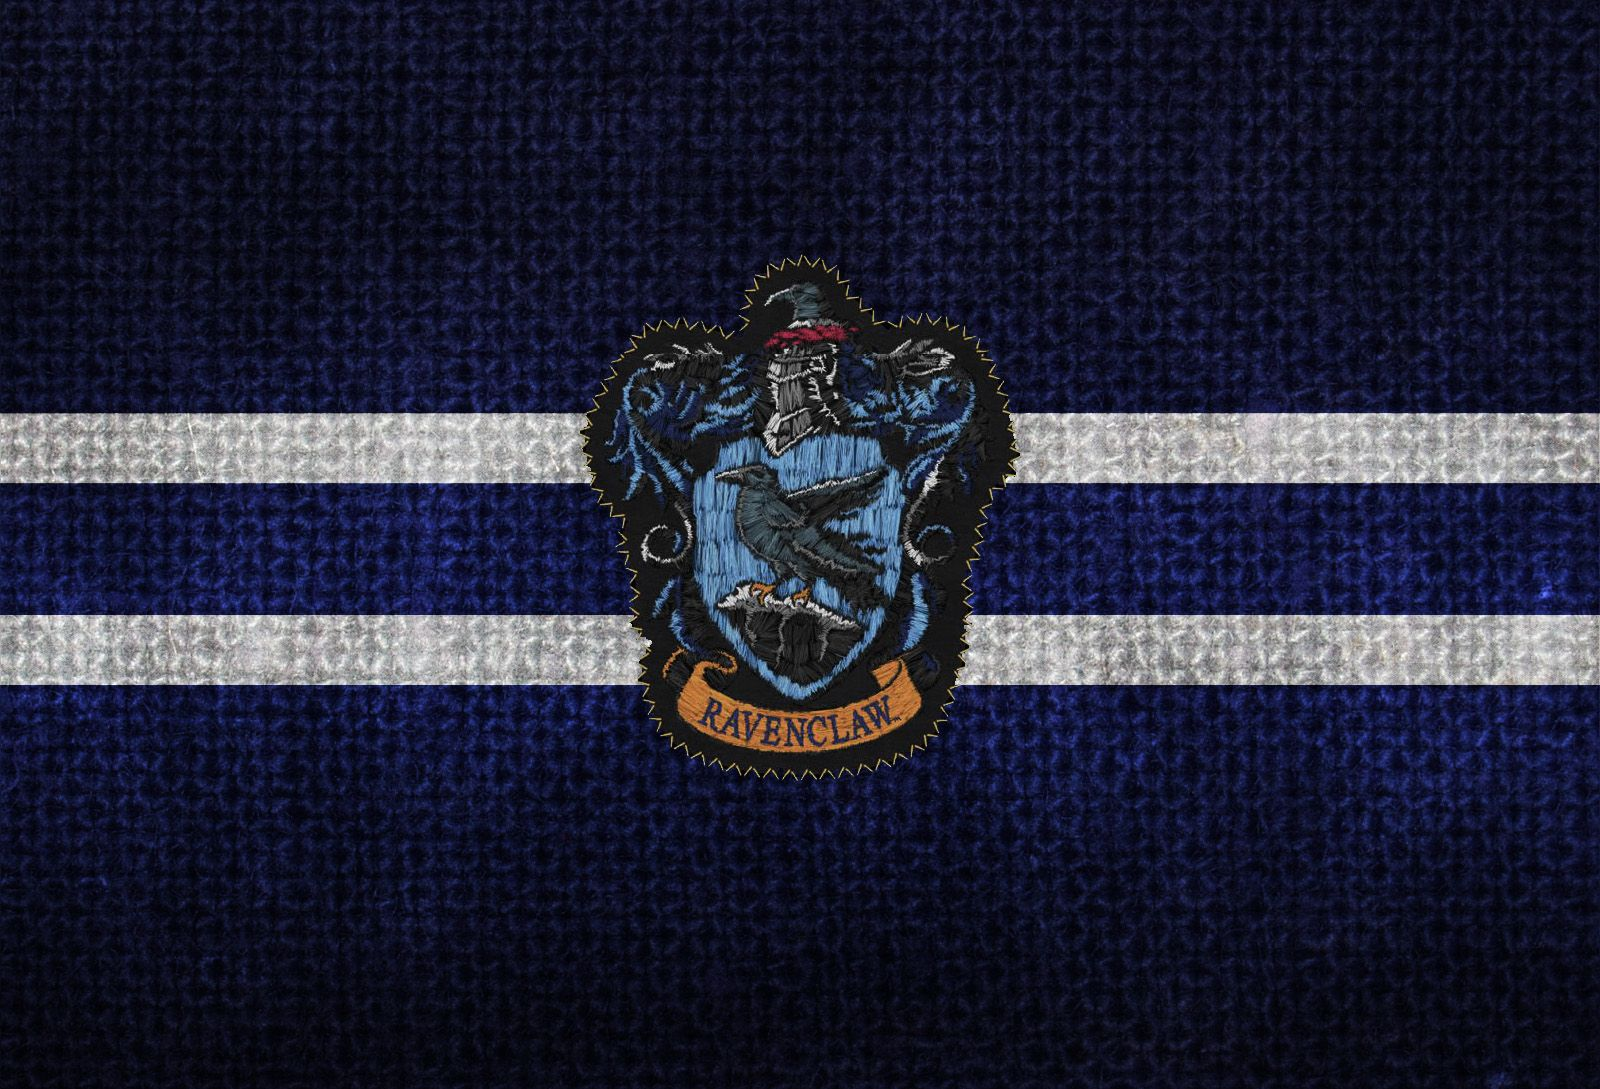 Ravenclaw wallpapers Gallery